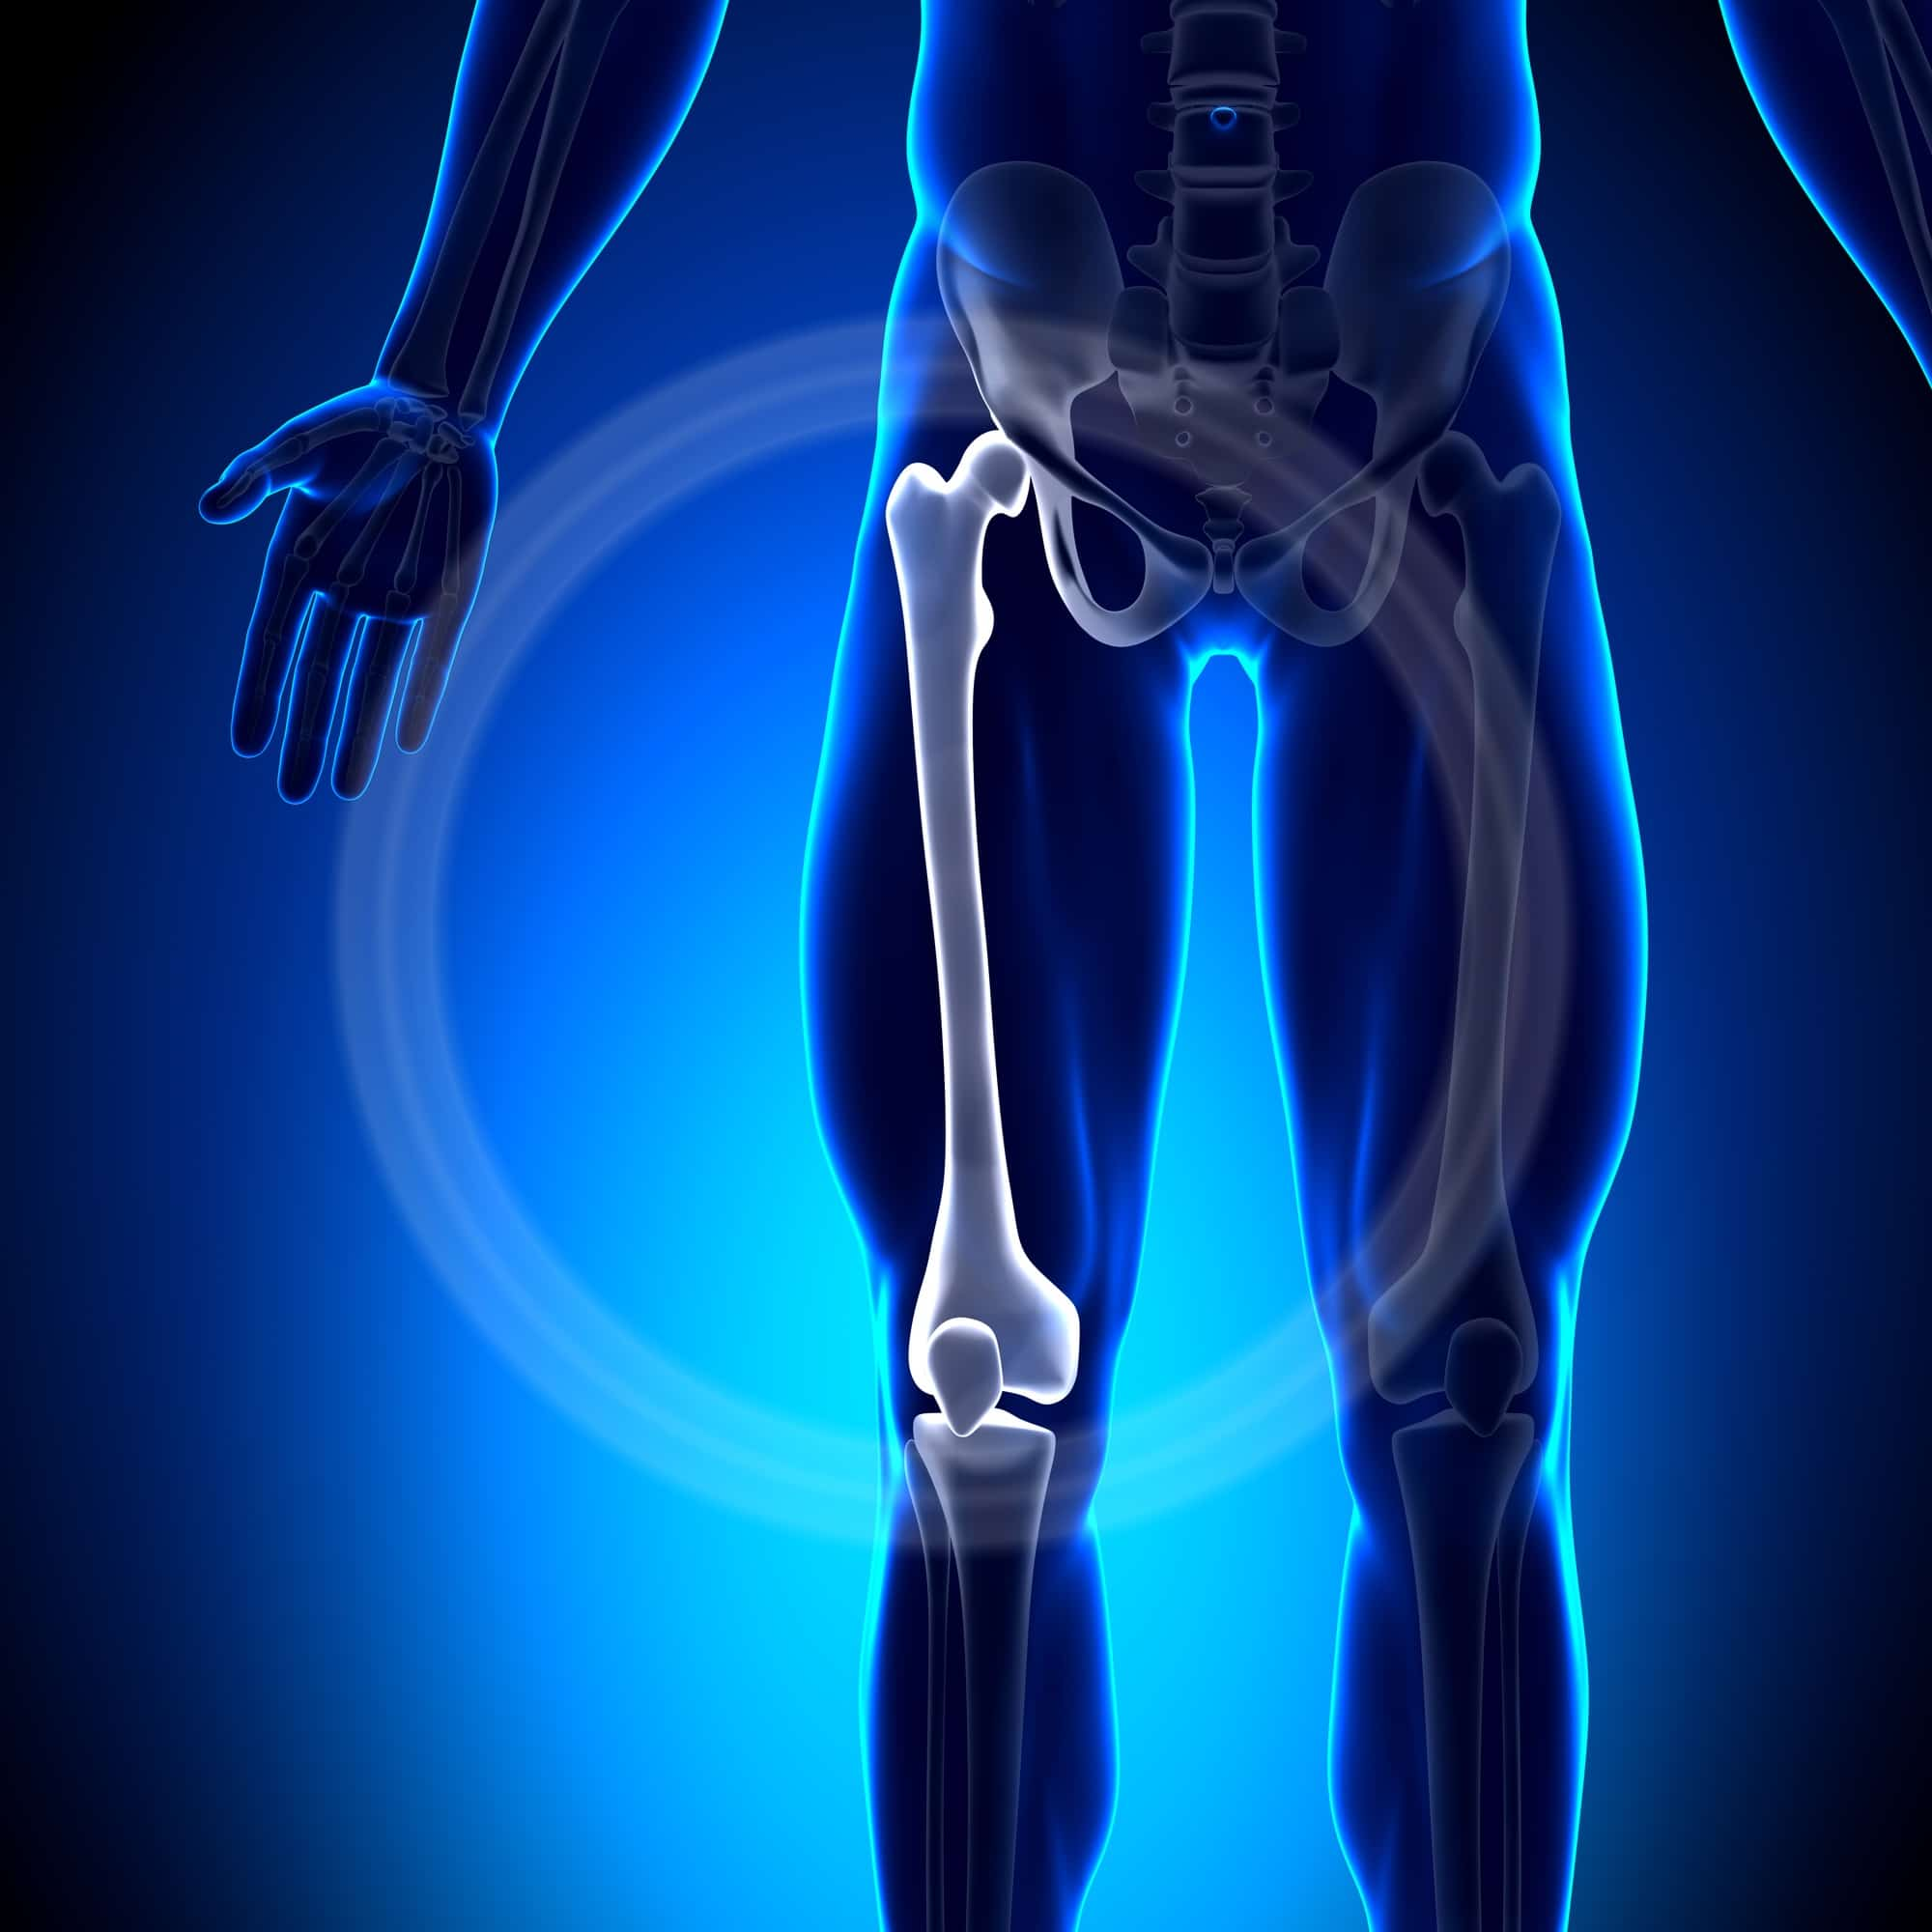 Femur Fracture | Overview, Symptoms, And Treatment